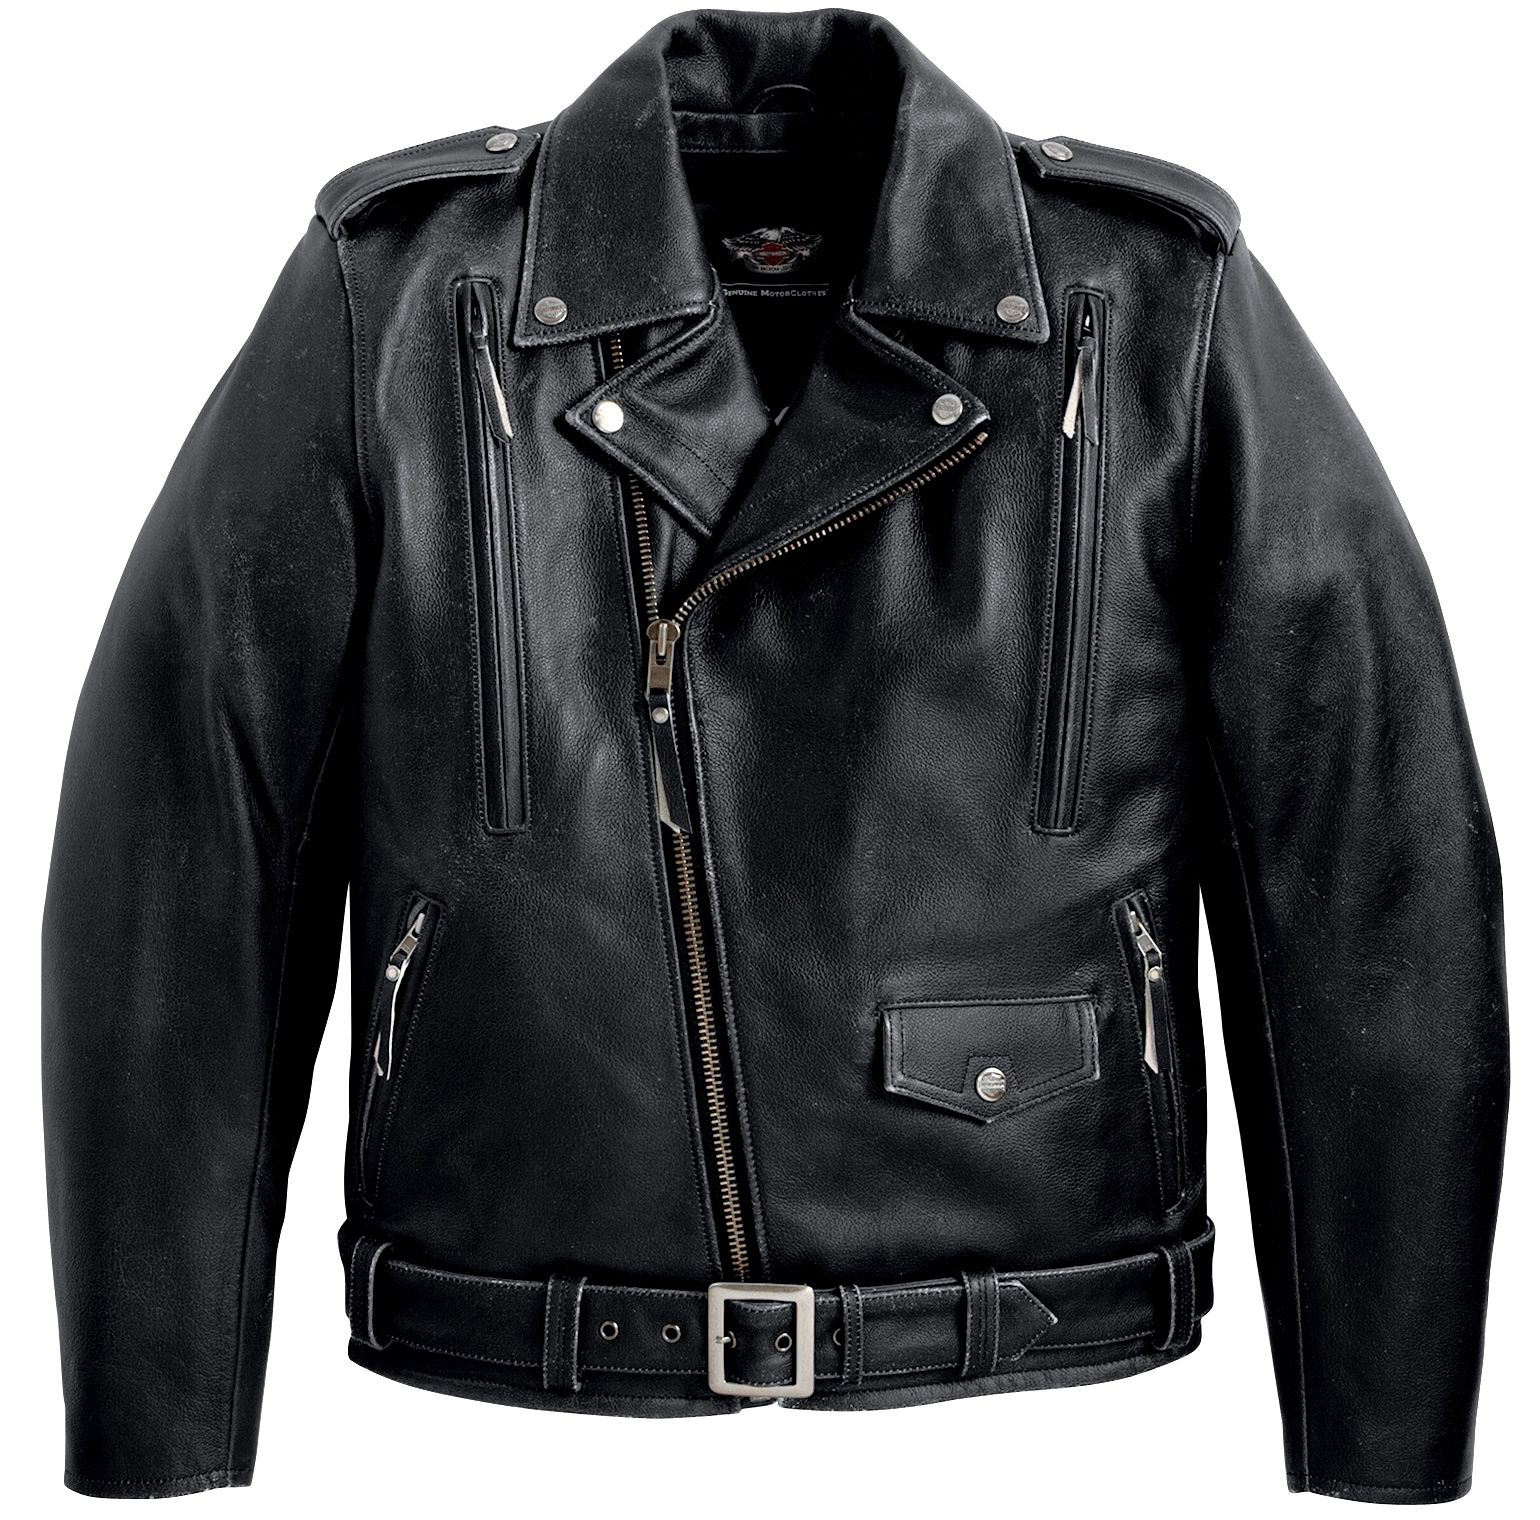 Timeless....black leather jackets....I still wear one I bought in ...